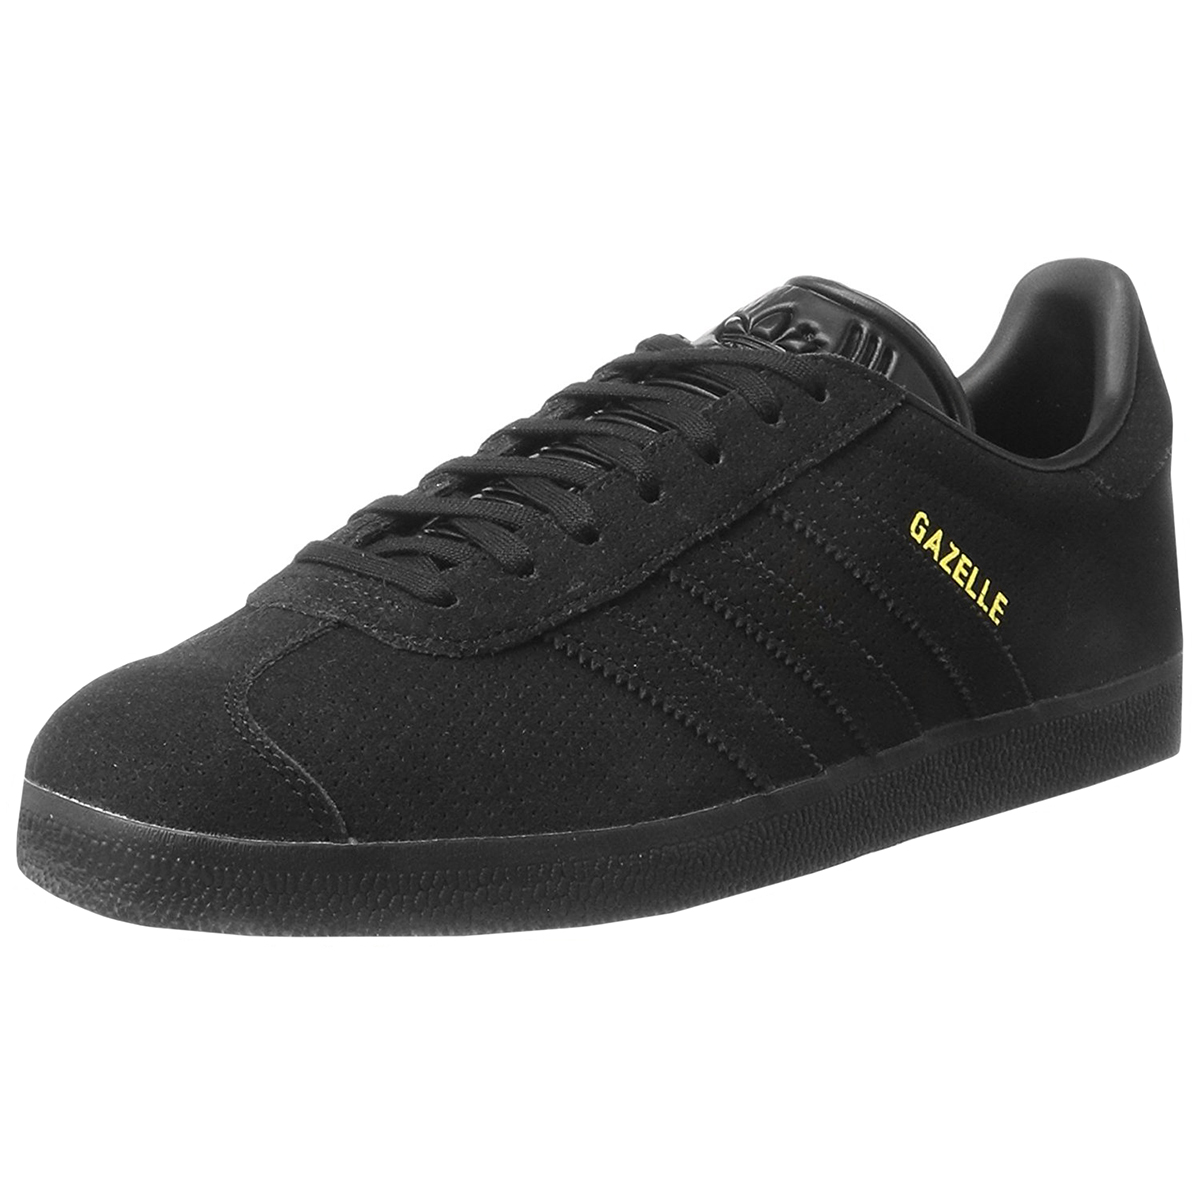 the best attitude 7b743 7fa42 Details about Adidas Originals Gazelle OrthoLite Suede Casual Shoes - Black  Black